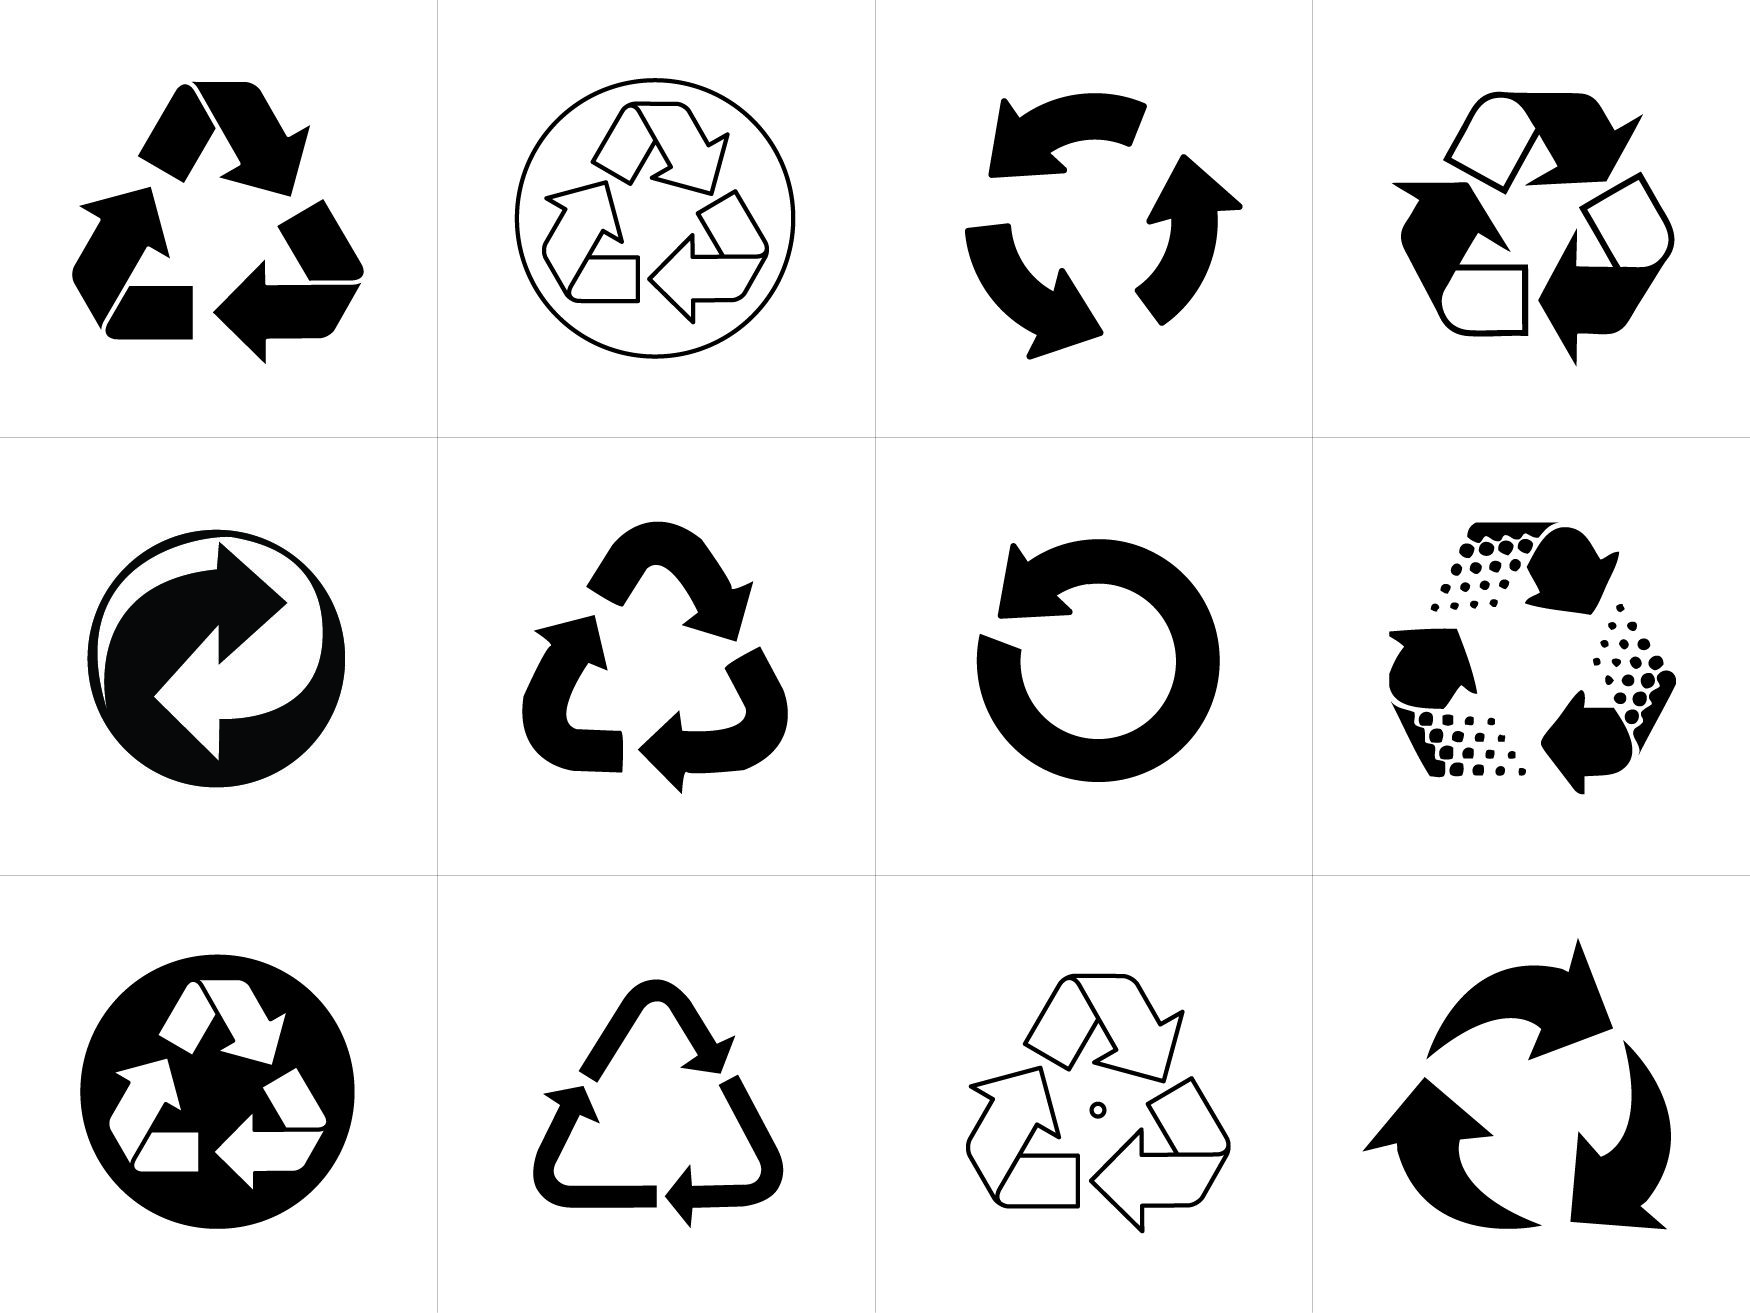 Recycling Symbol Vectors For Download Logo Google Logos And Google